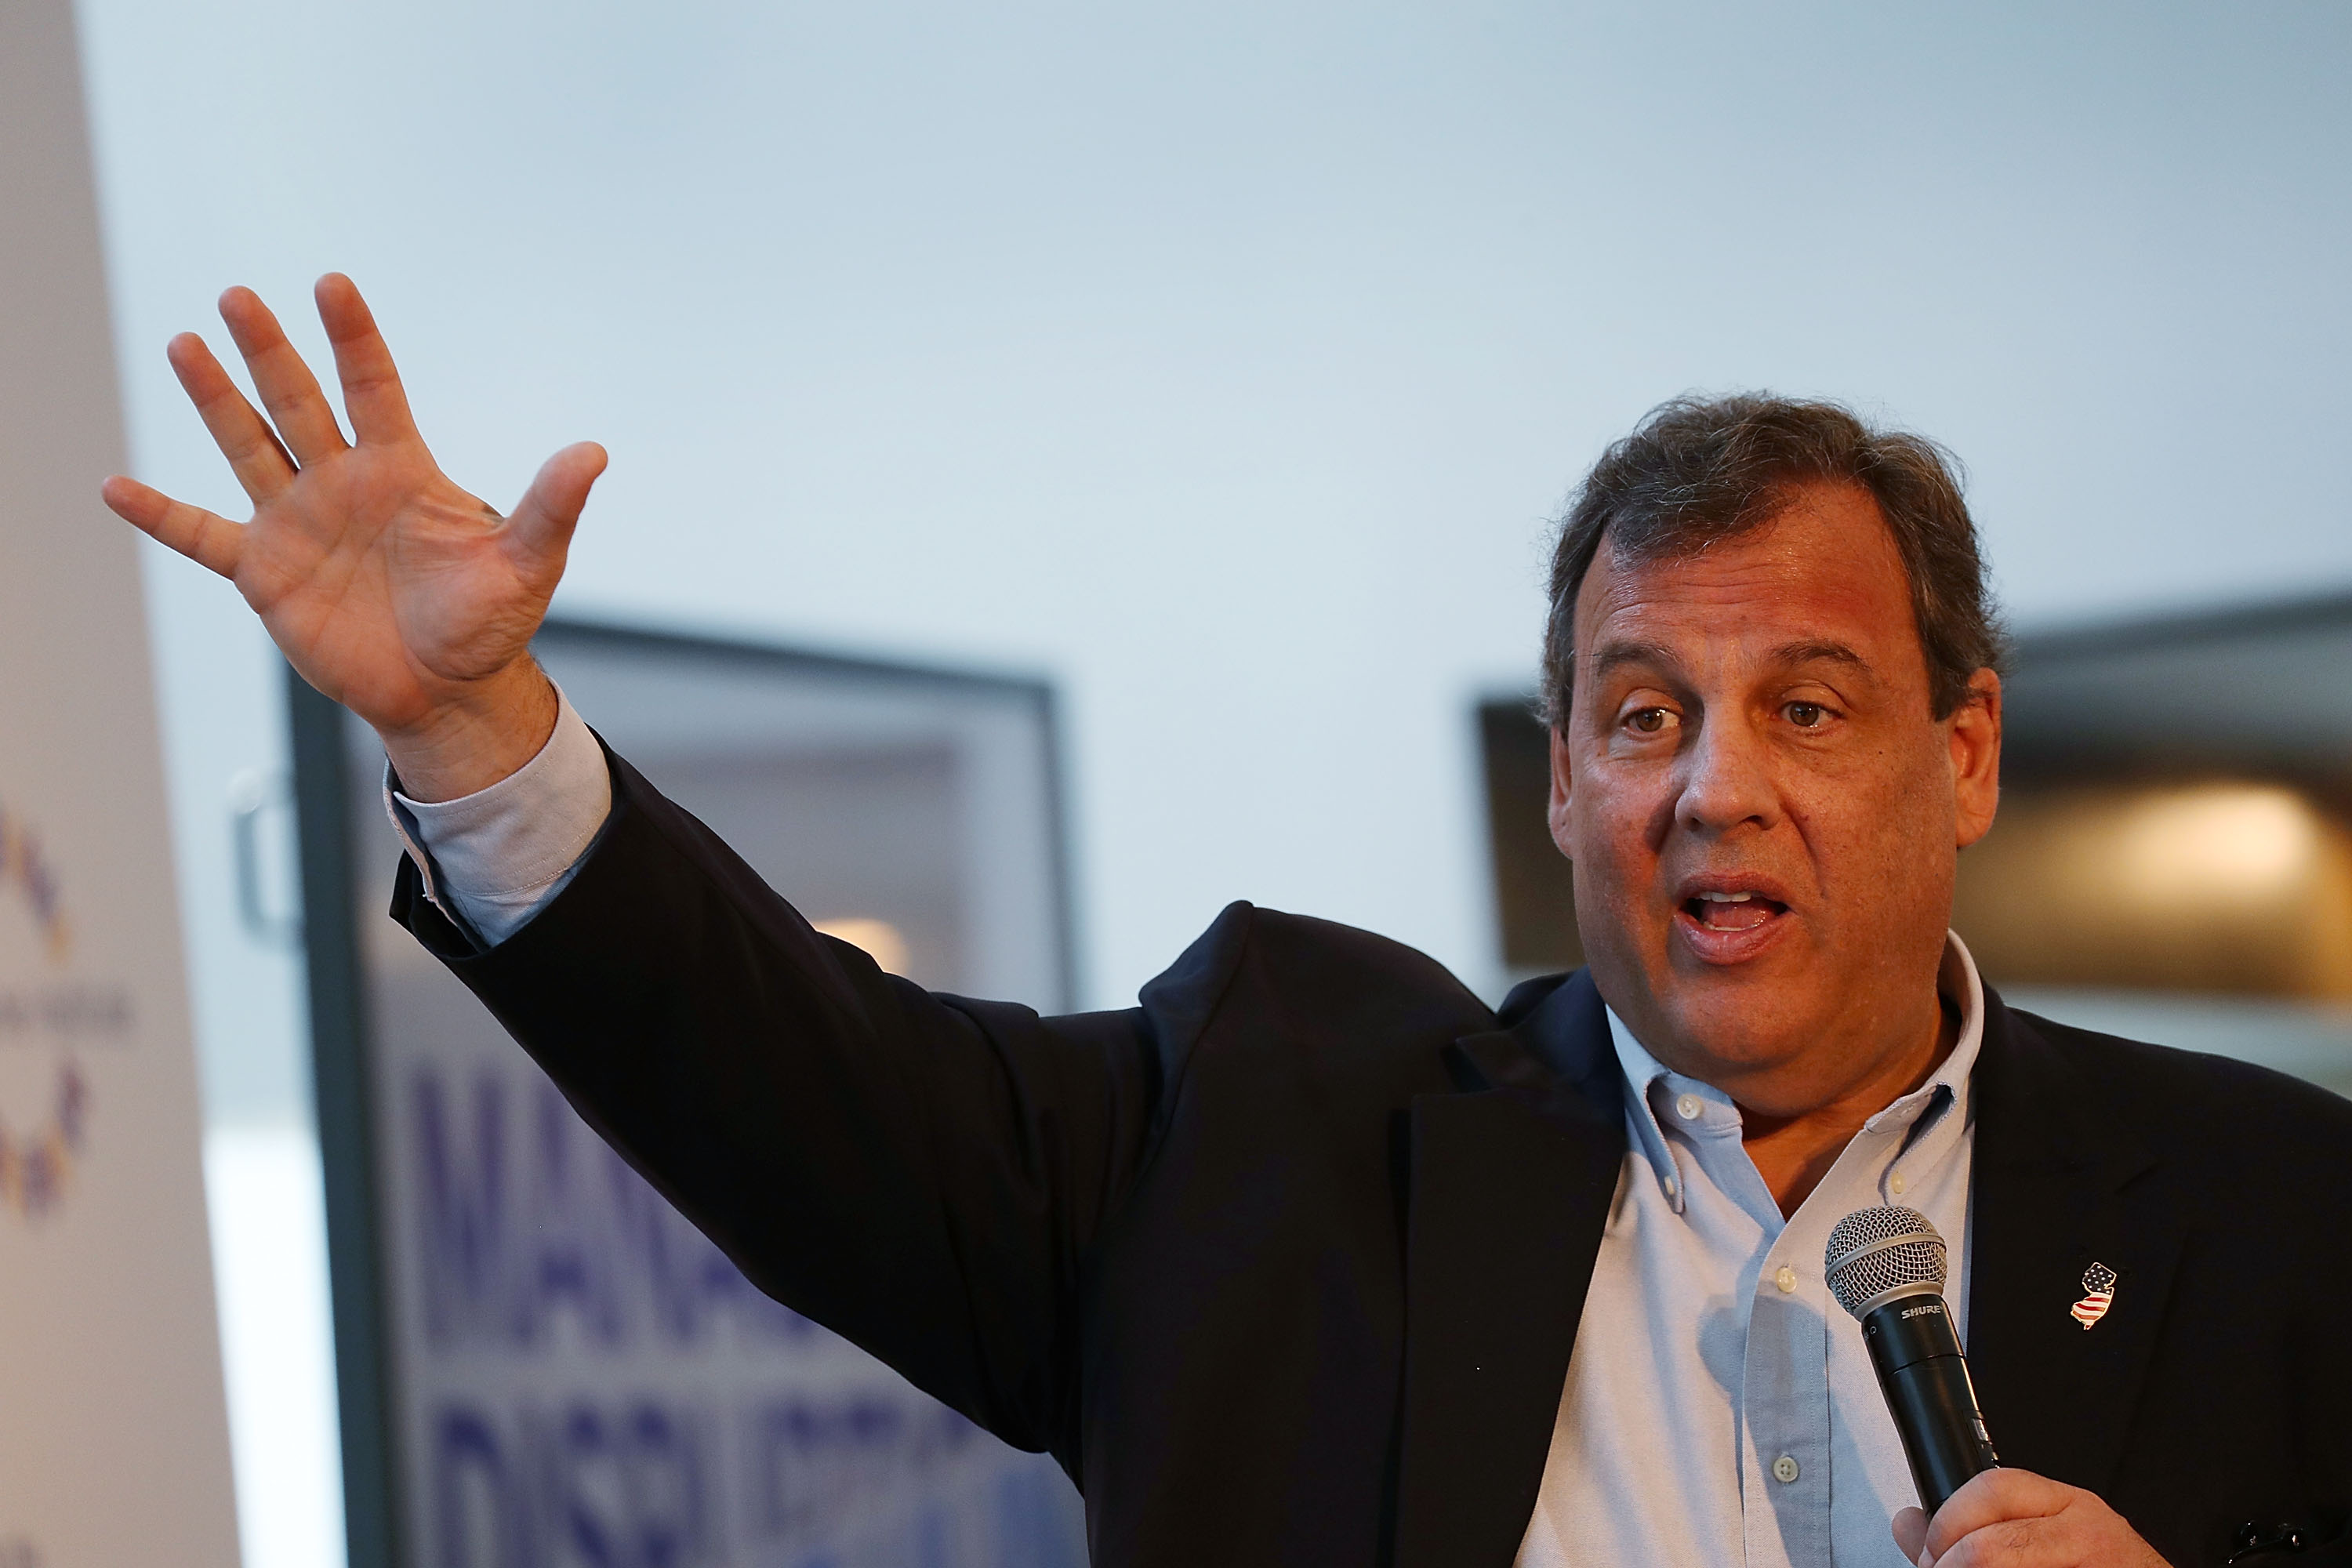 New Jersey Gov. Chris Christie speaks during the  Managing the Disruption  conference held at the Tideline Ocean Resort on April 3, 2017 in Palm Beach, Florida.